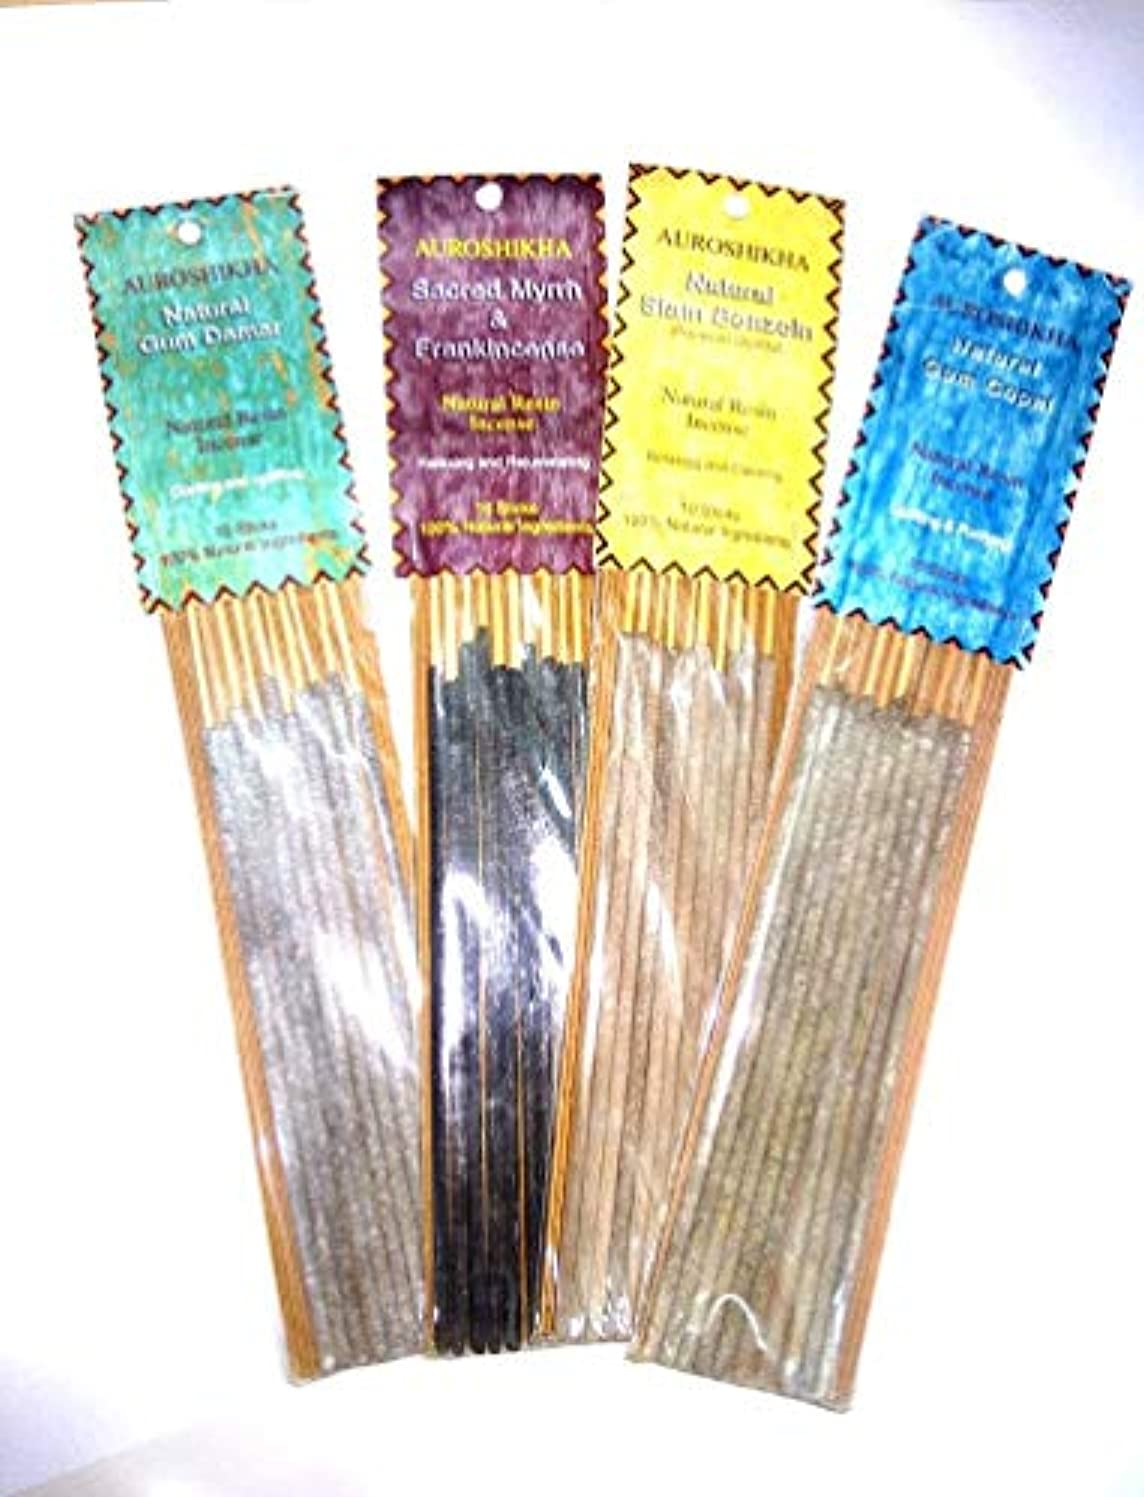 共産主義者精通した試みるAUROSHIKA Resin Incense Sticks (Set of 4 PCS)